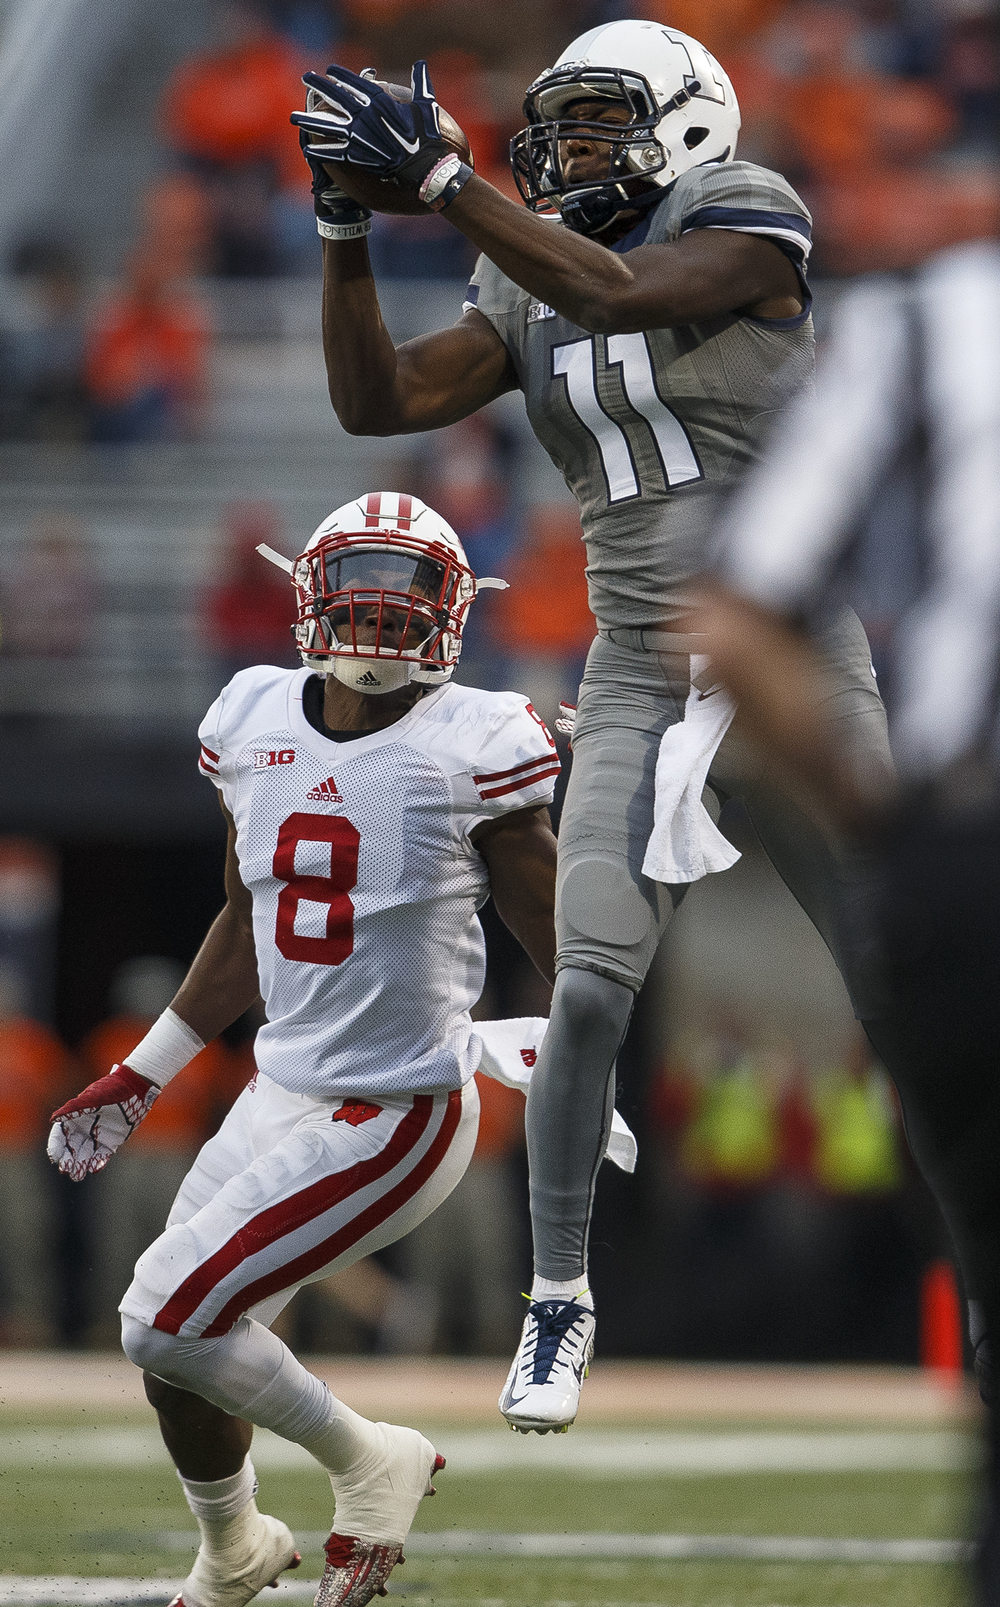 Illinois' Malik Turner grabs a pass in front of Wisconsin's Sojourn Shelton at Memorial Stadium Saturday, Oct. 24, 2015. Ted Schurter/The State Journal-Register